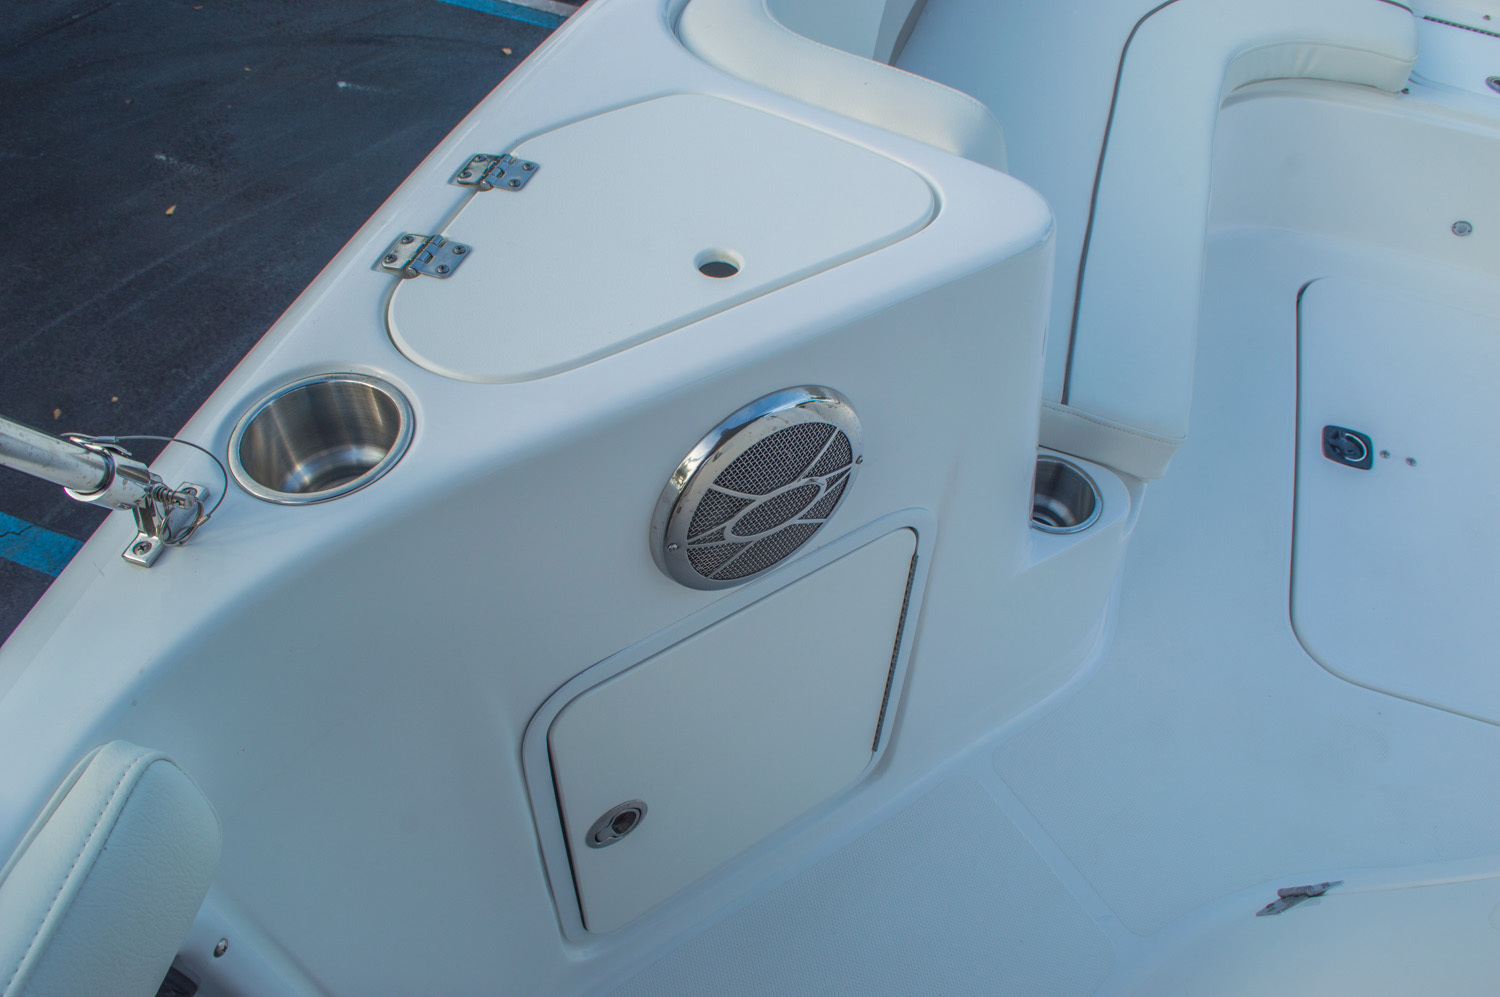 Thumbnail 34 for New 2016 Hurricane CC211 Center Consle boat for sale in West Palm Beach, FL